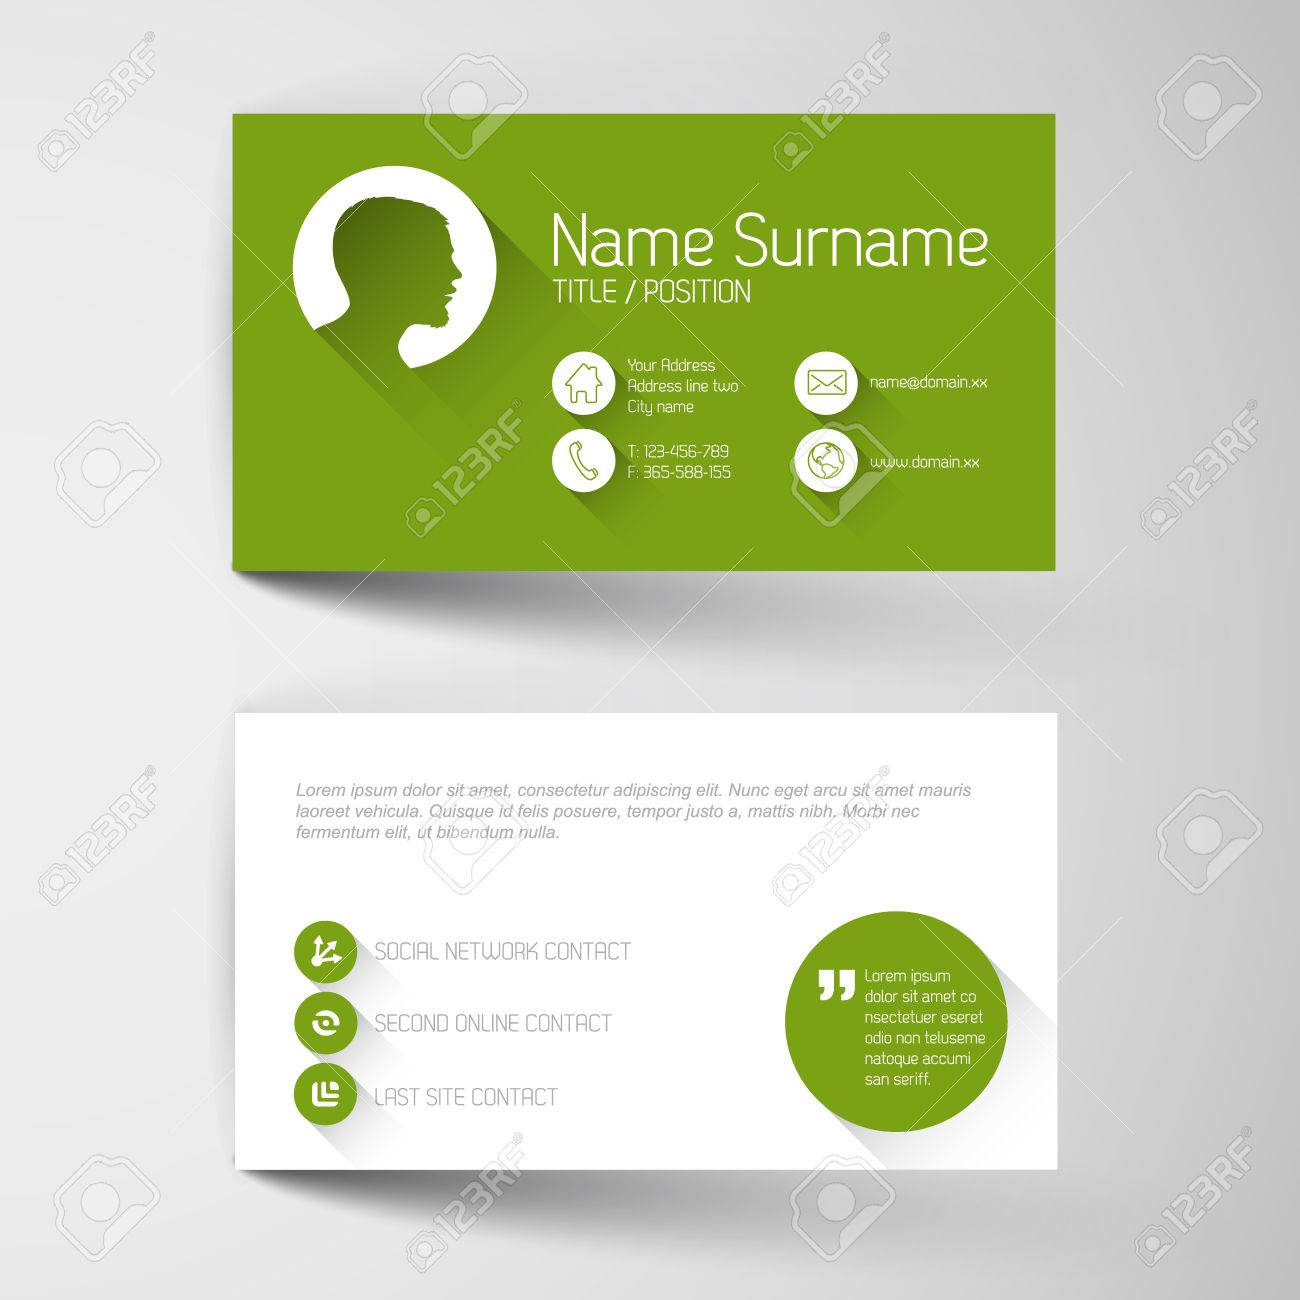 modern simple green business card template flat user modern simple green business card template flat user interface stock vector 28682377